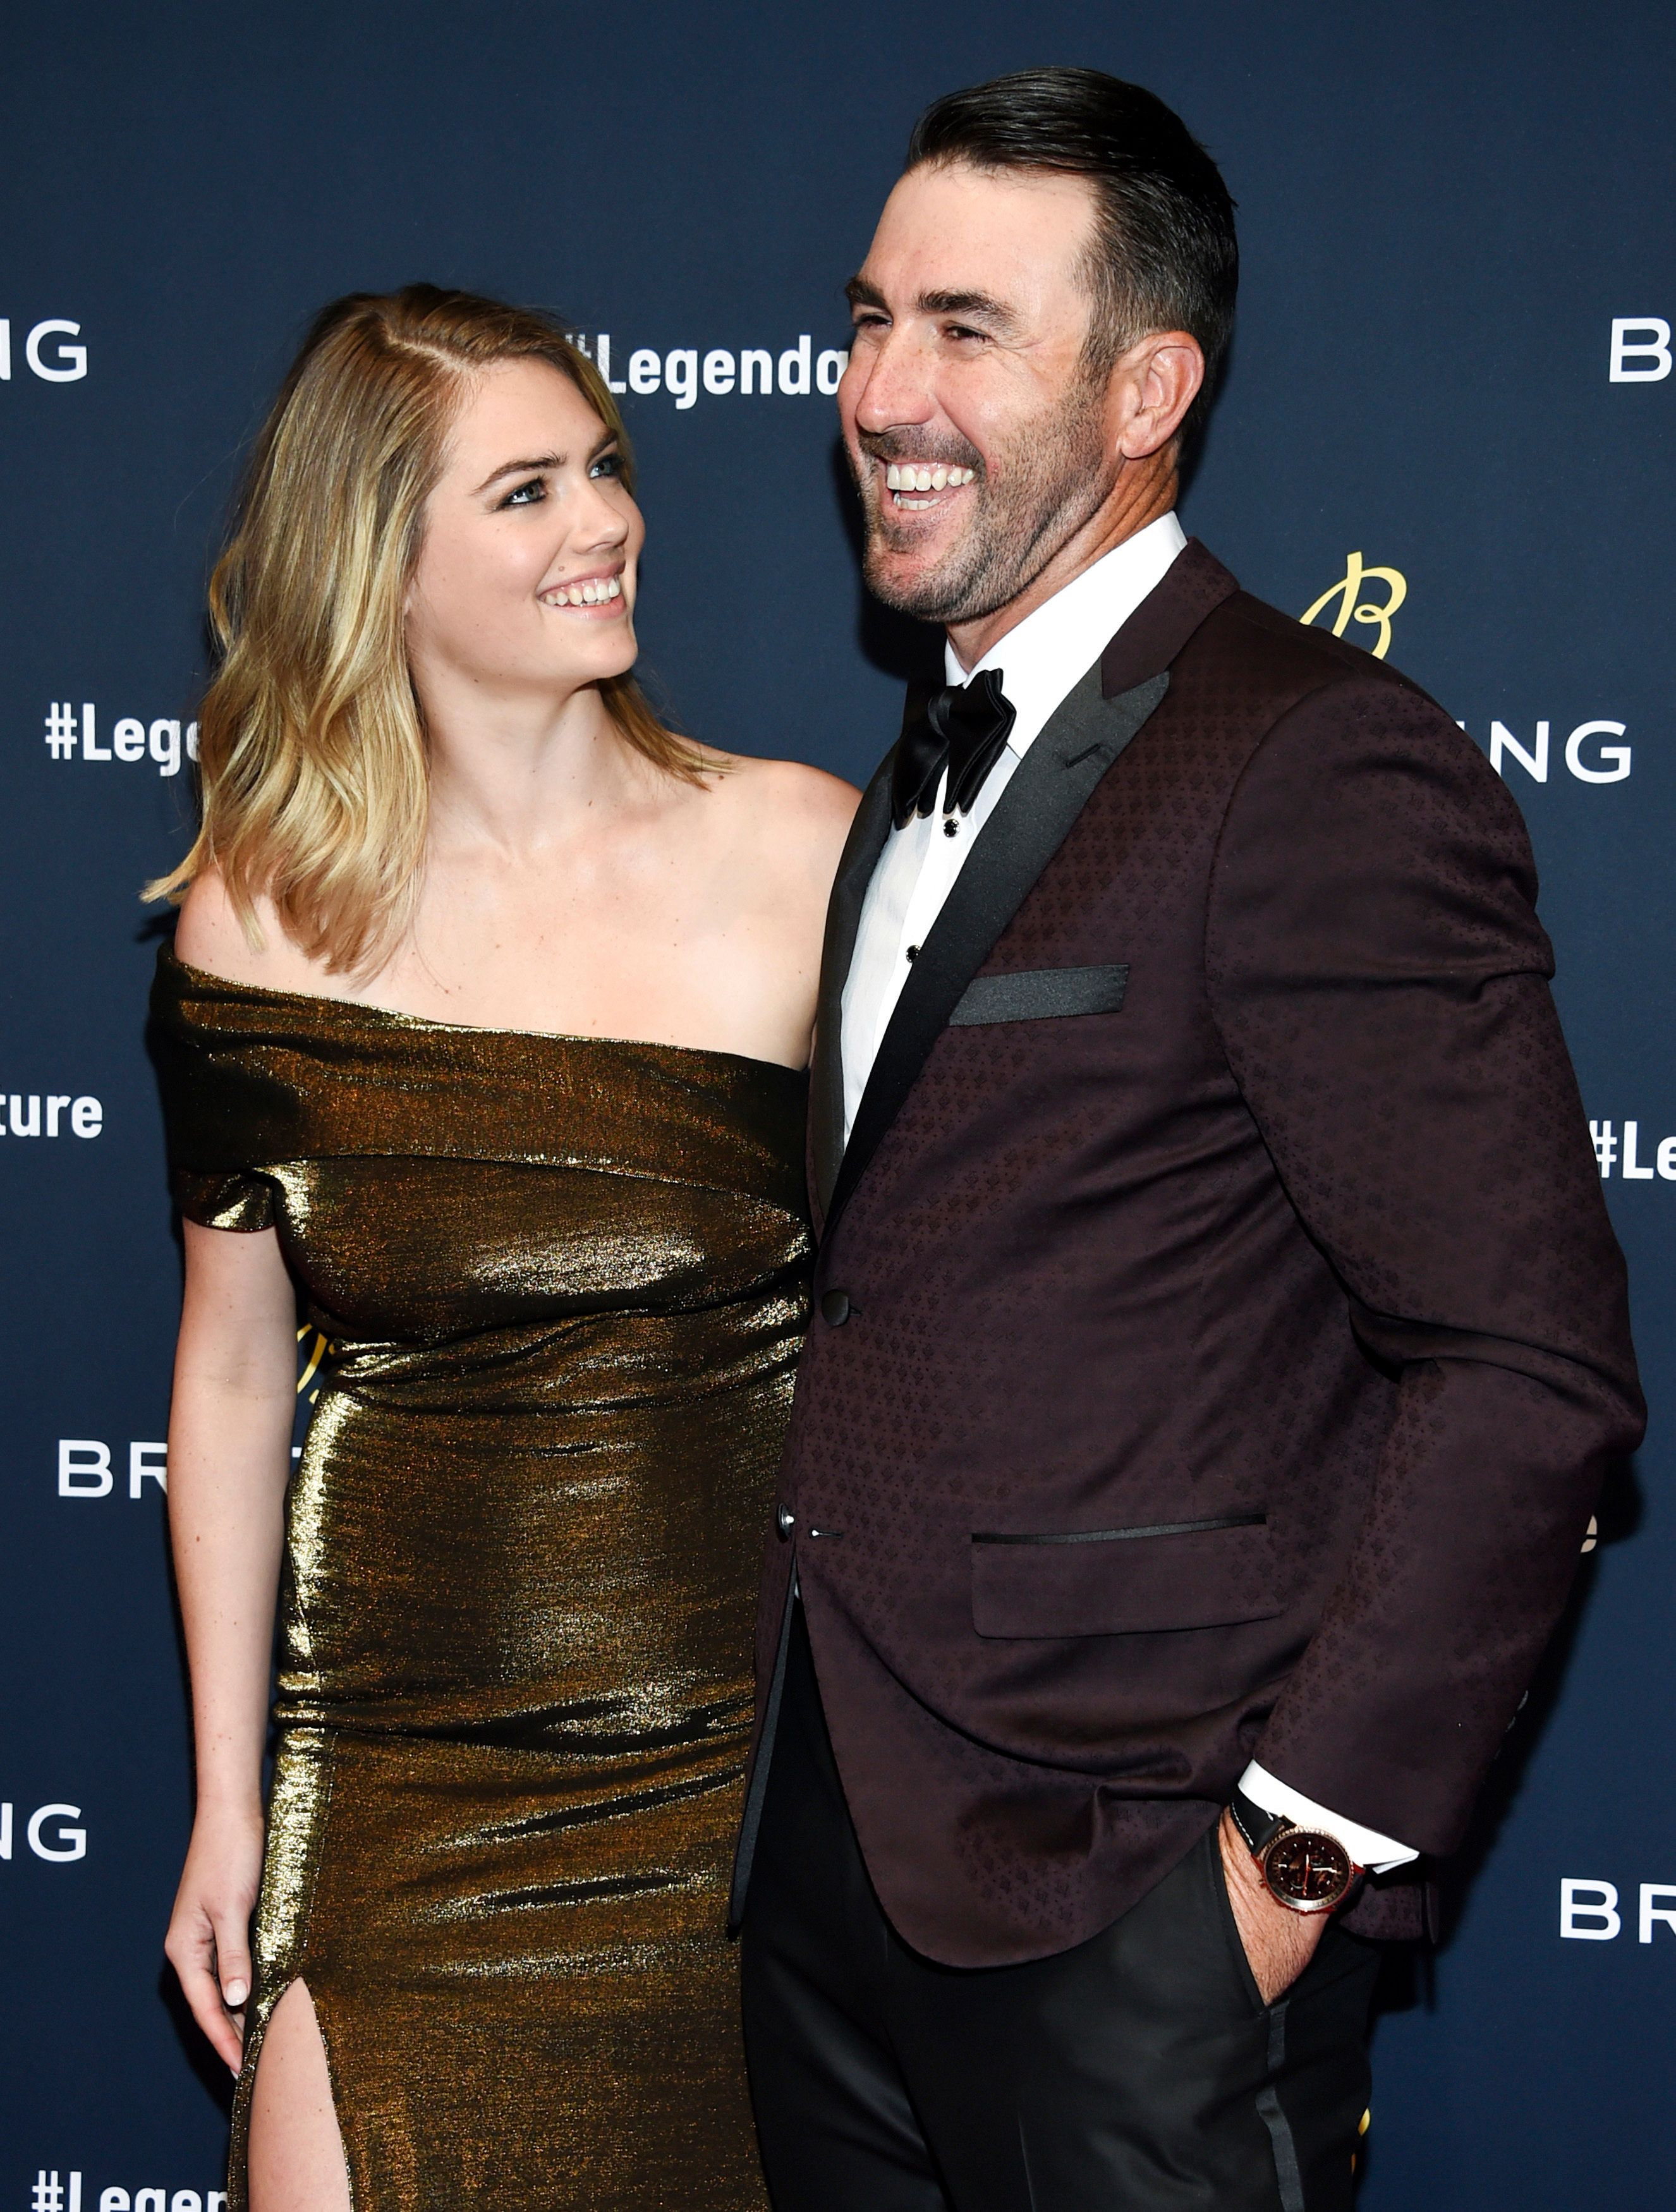 """FILE - In this Feb. 22, 2018, file photo, supermodel Kate Upton and husband professional baseball player Justin Verlander attend the Breitling Global Roadshow event at The Duggal Greenhouse in New York. Upton and Verlander are expecting their first child. Upton announced the pregnancy on Instagram on Saturday, July 14, 2018, in a post with the hashtag """"pregnant in Miami"""" where she tagged Verlander. (Photo by Evan Agostini/Invision/AP, Fileo"""